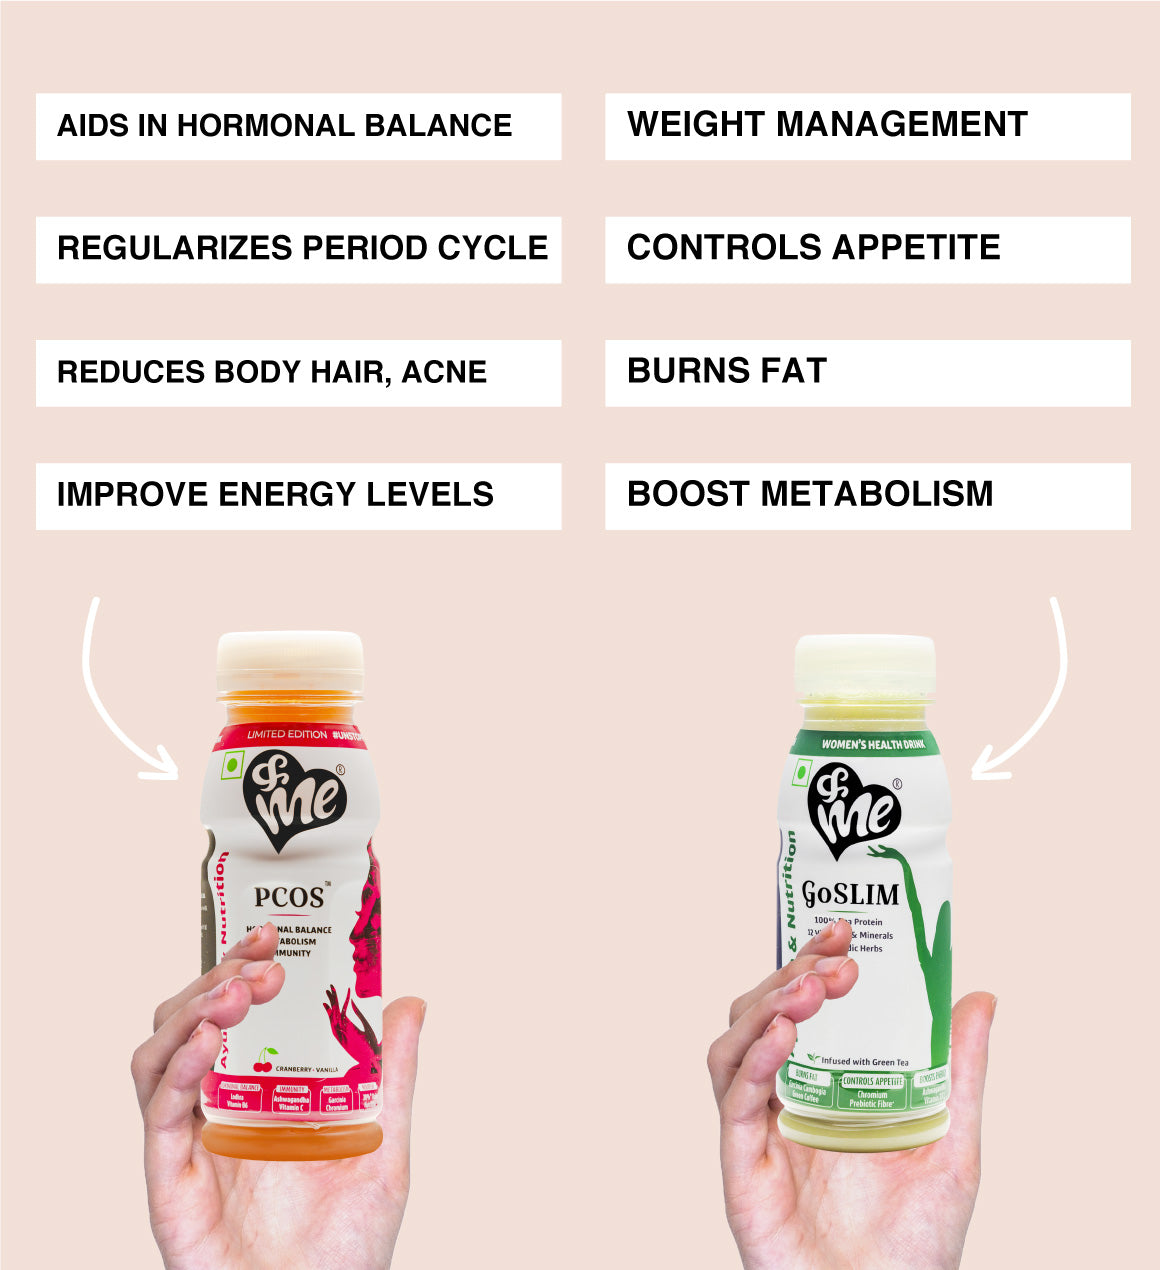 &Me PCOS and weight loss drink combo